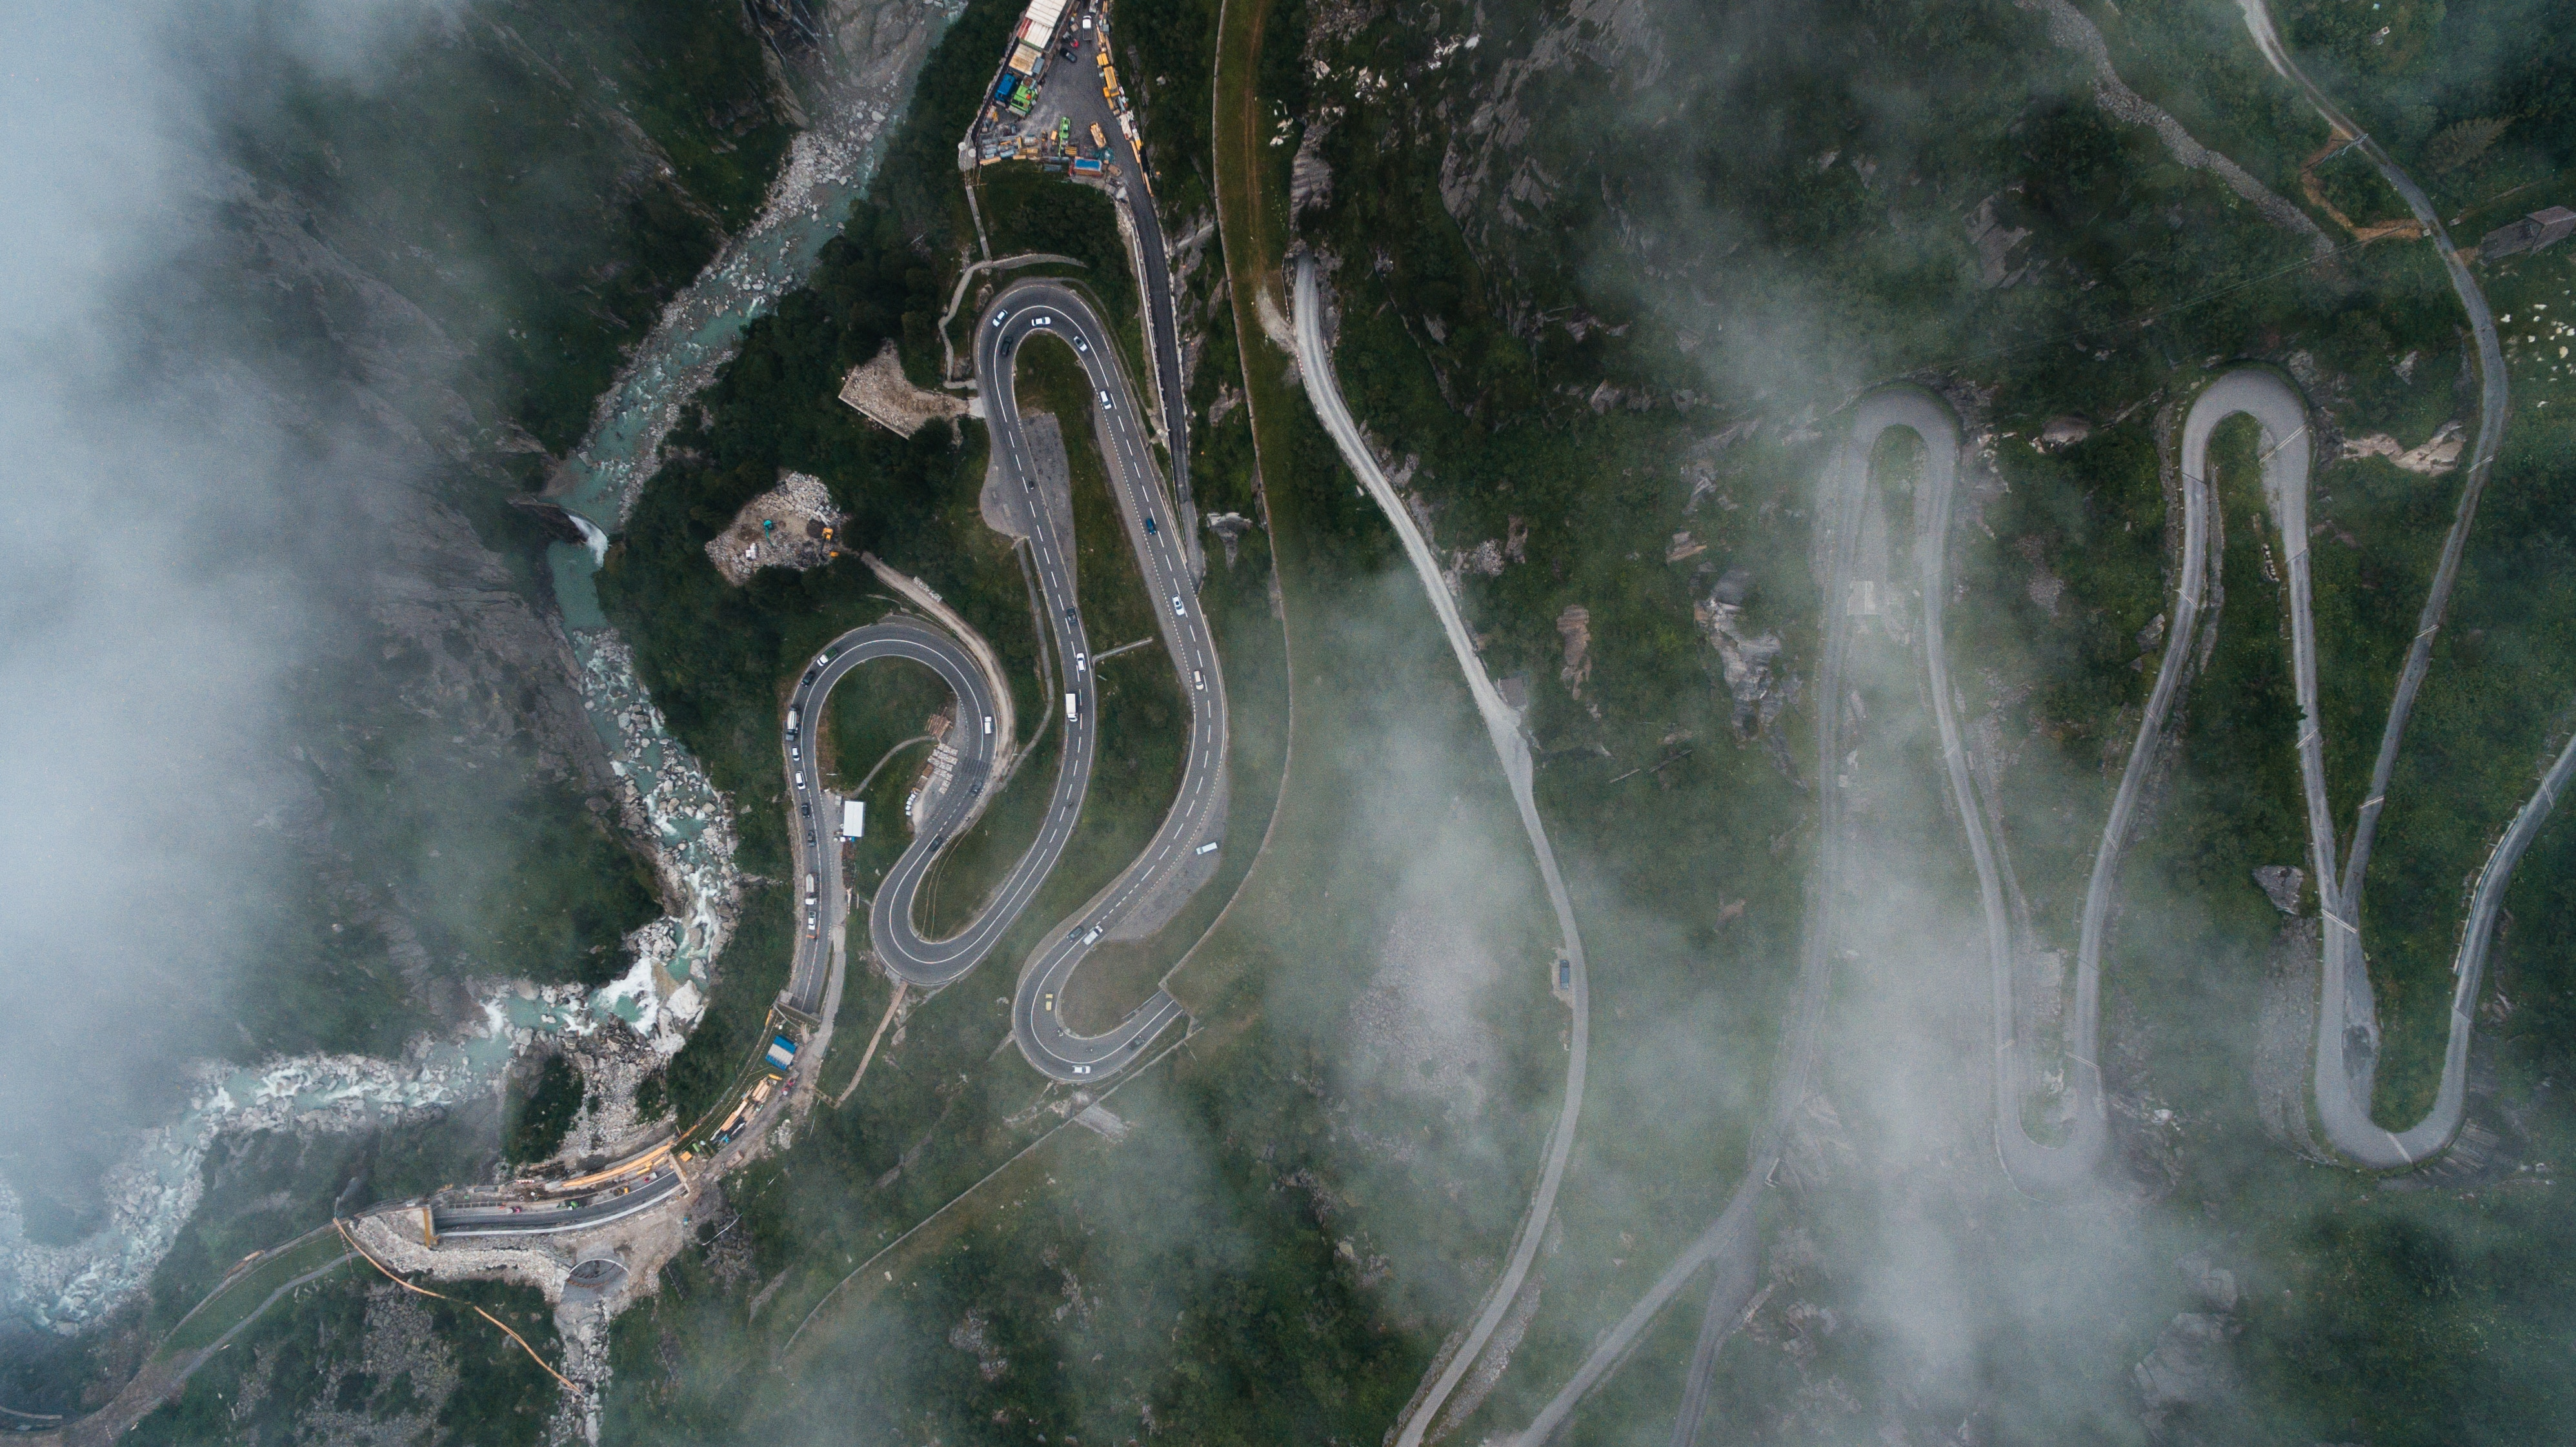 An aerial view of winding roads.